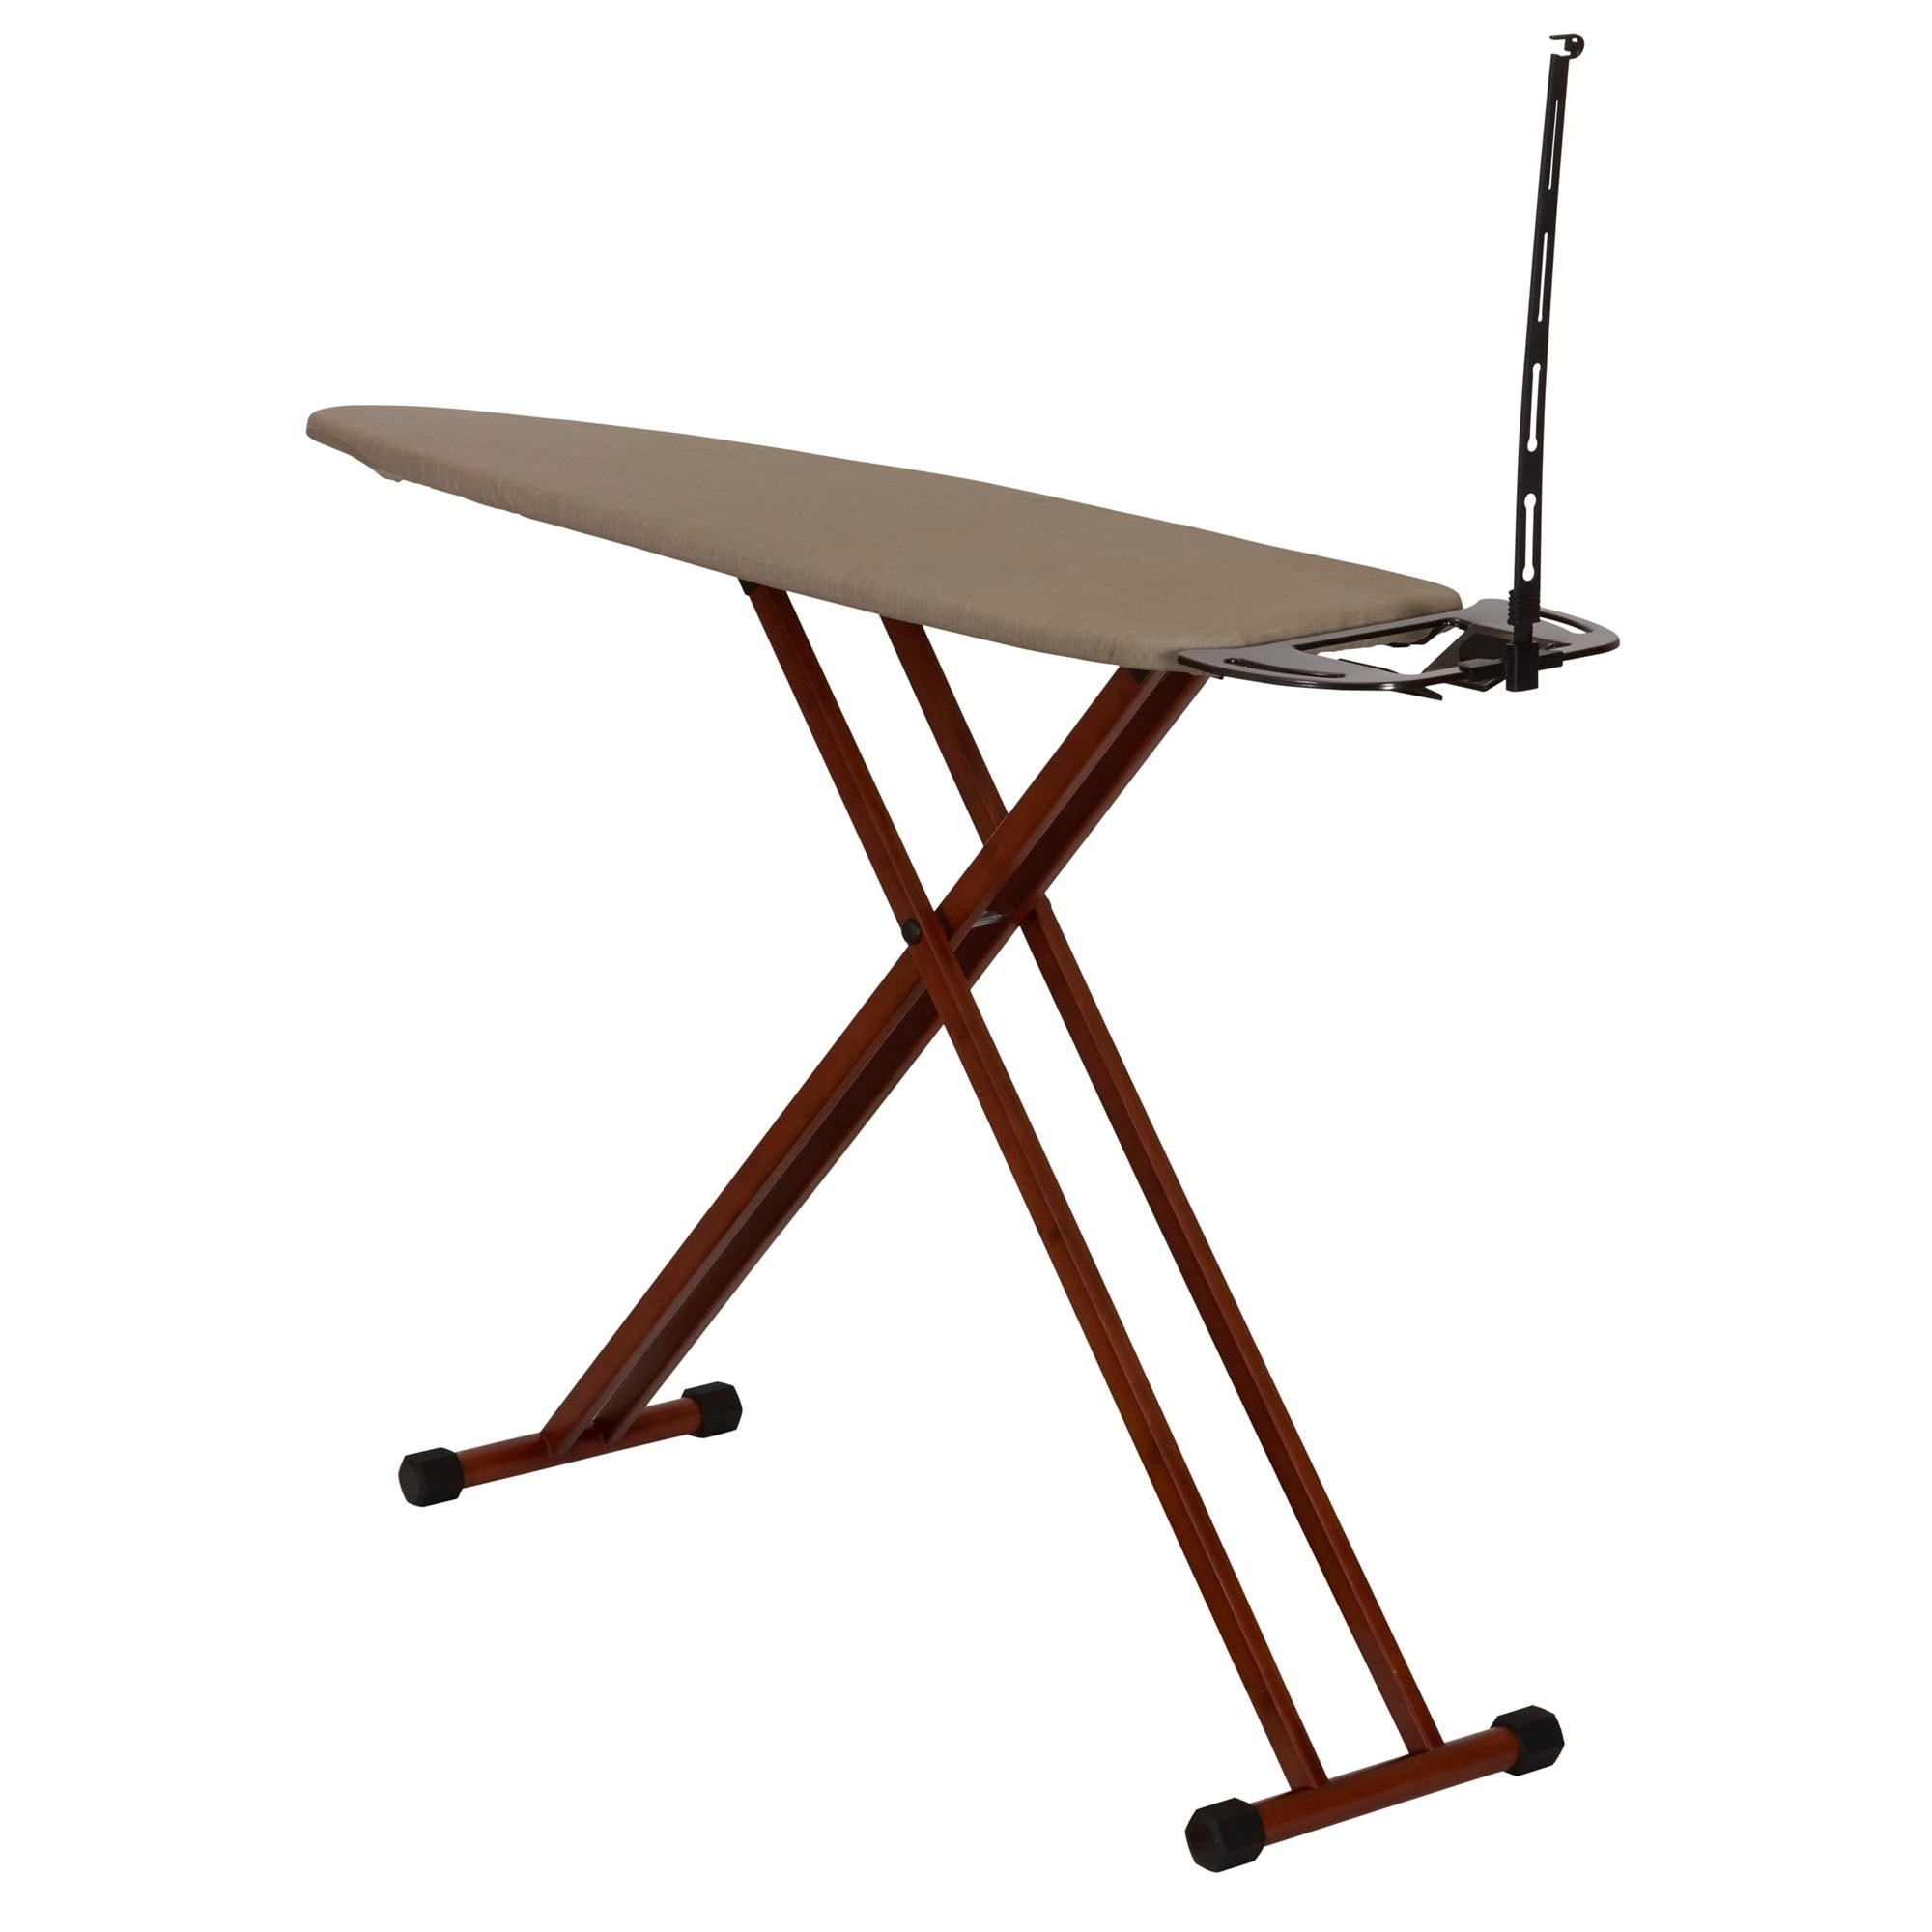 Household Essentials Bamboo (Green) Leg Ironing Board wit...